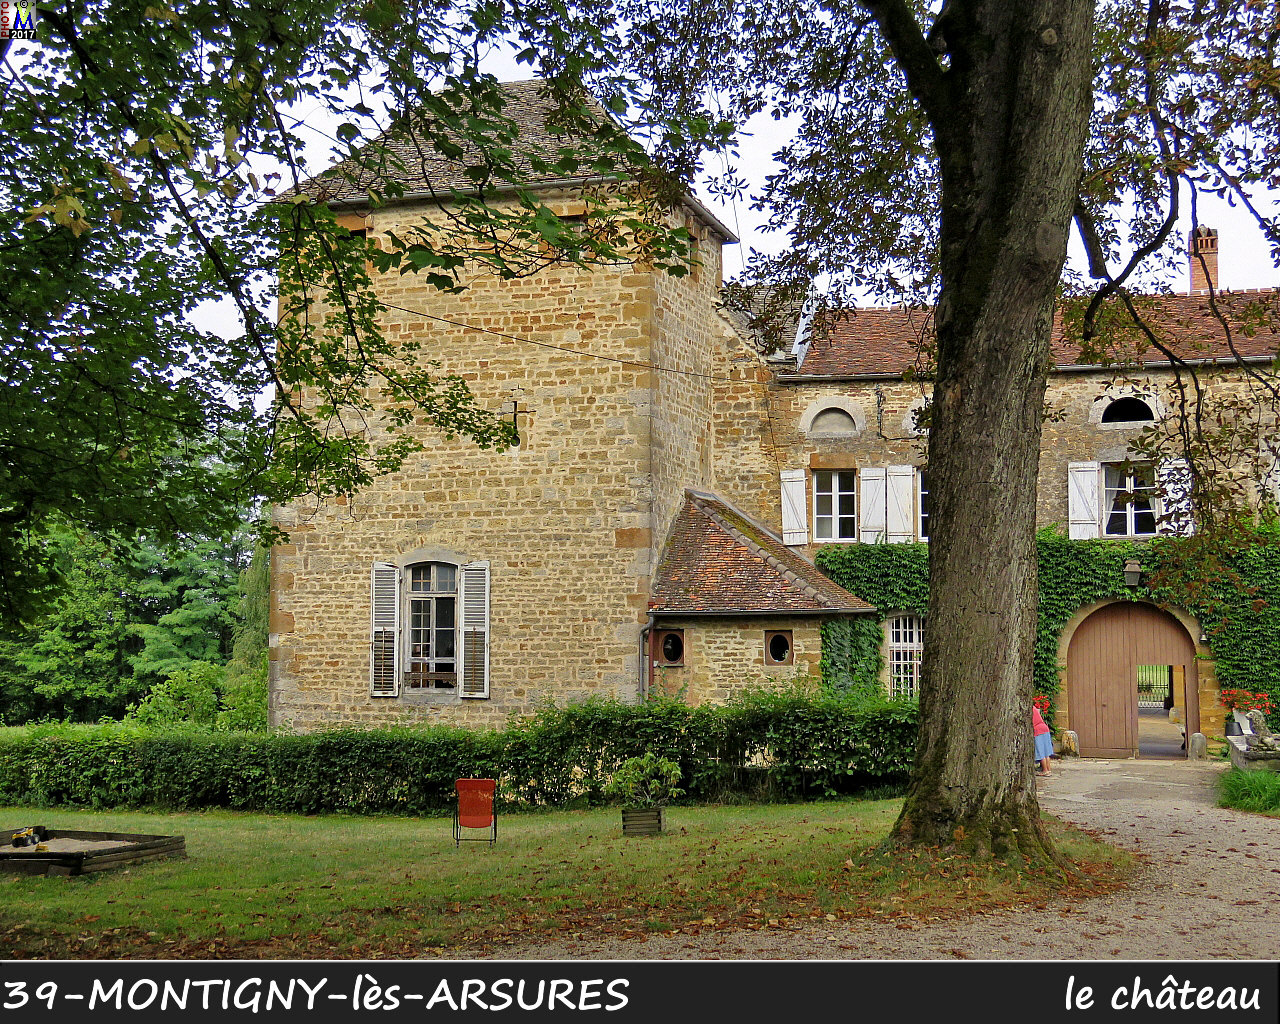 39MONTIGNY-les-ARSURES_chateau_102.jpg